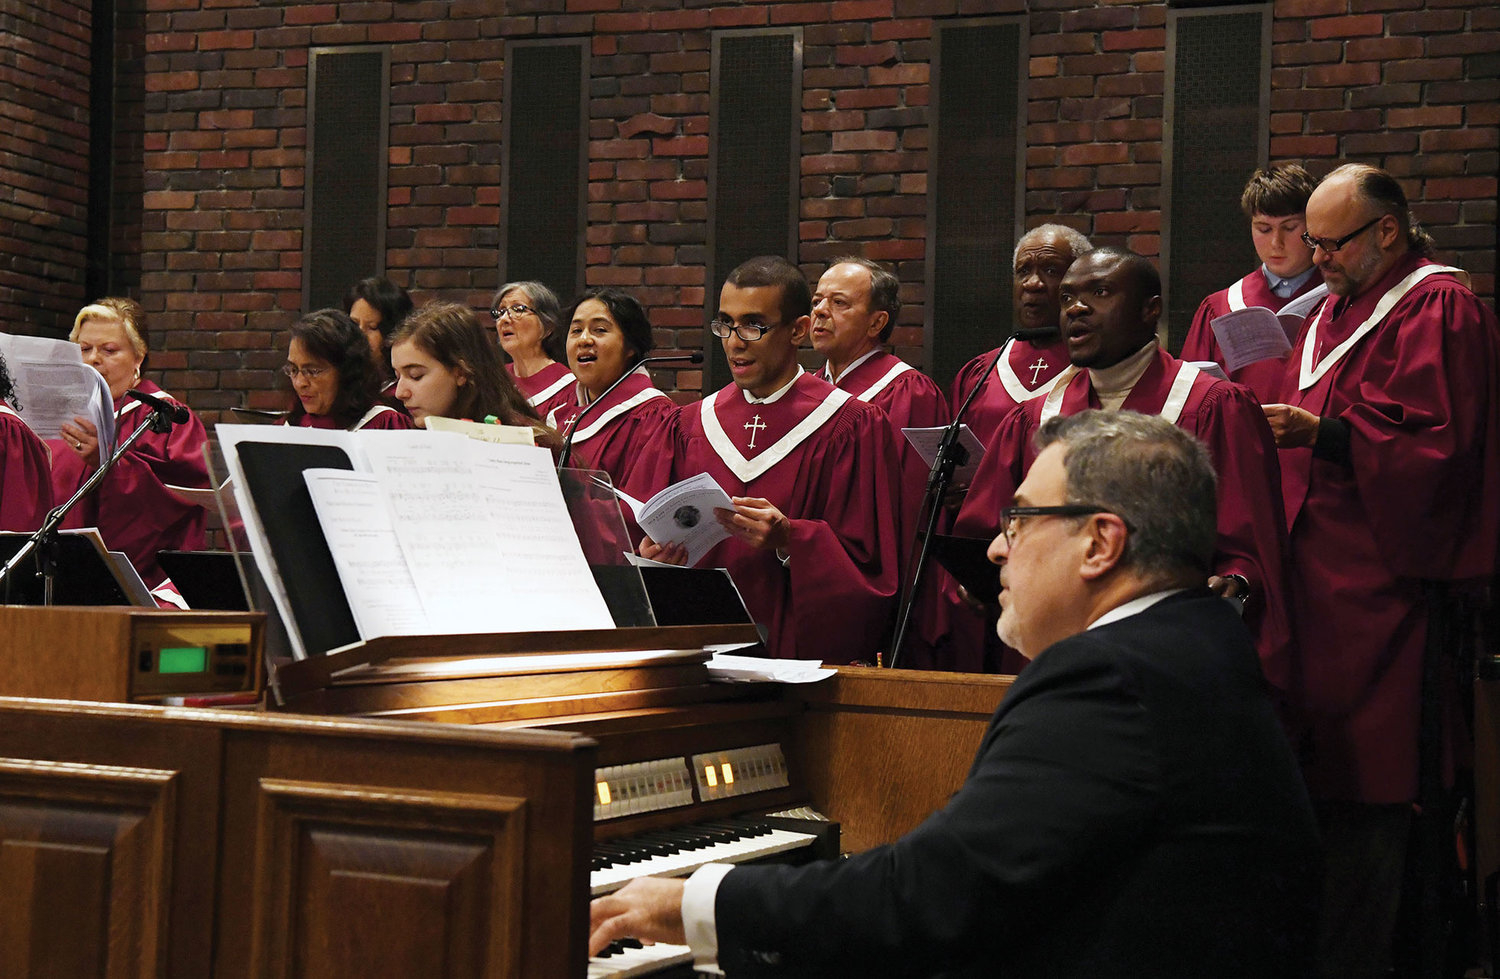 Gusti Daija, music director, leads the choir at the organ during the Mass.